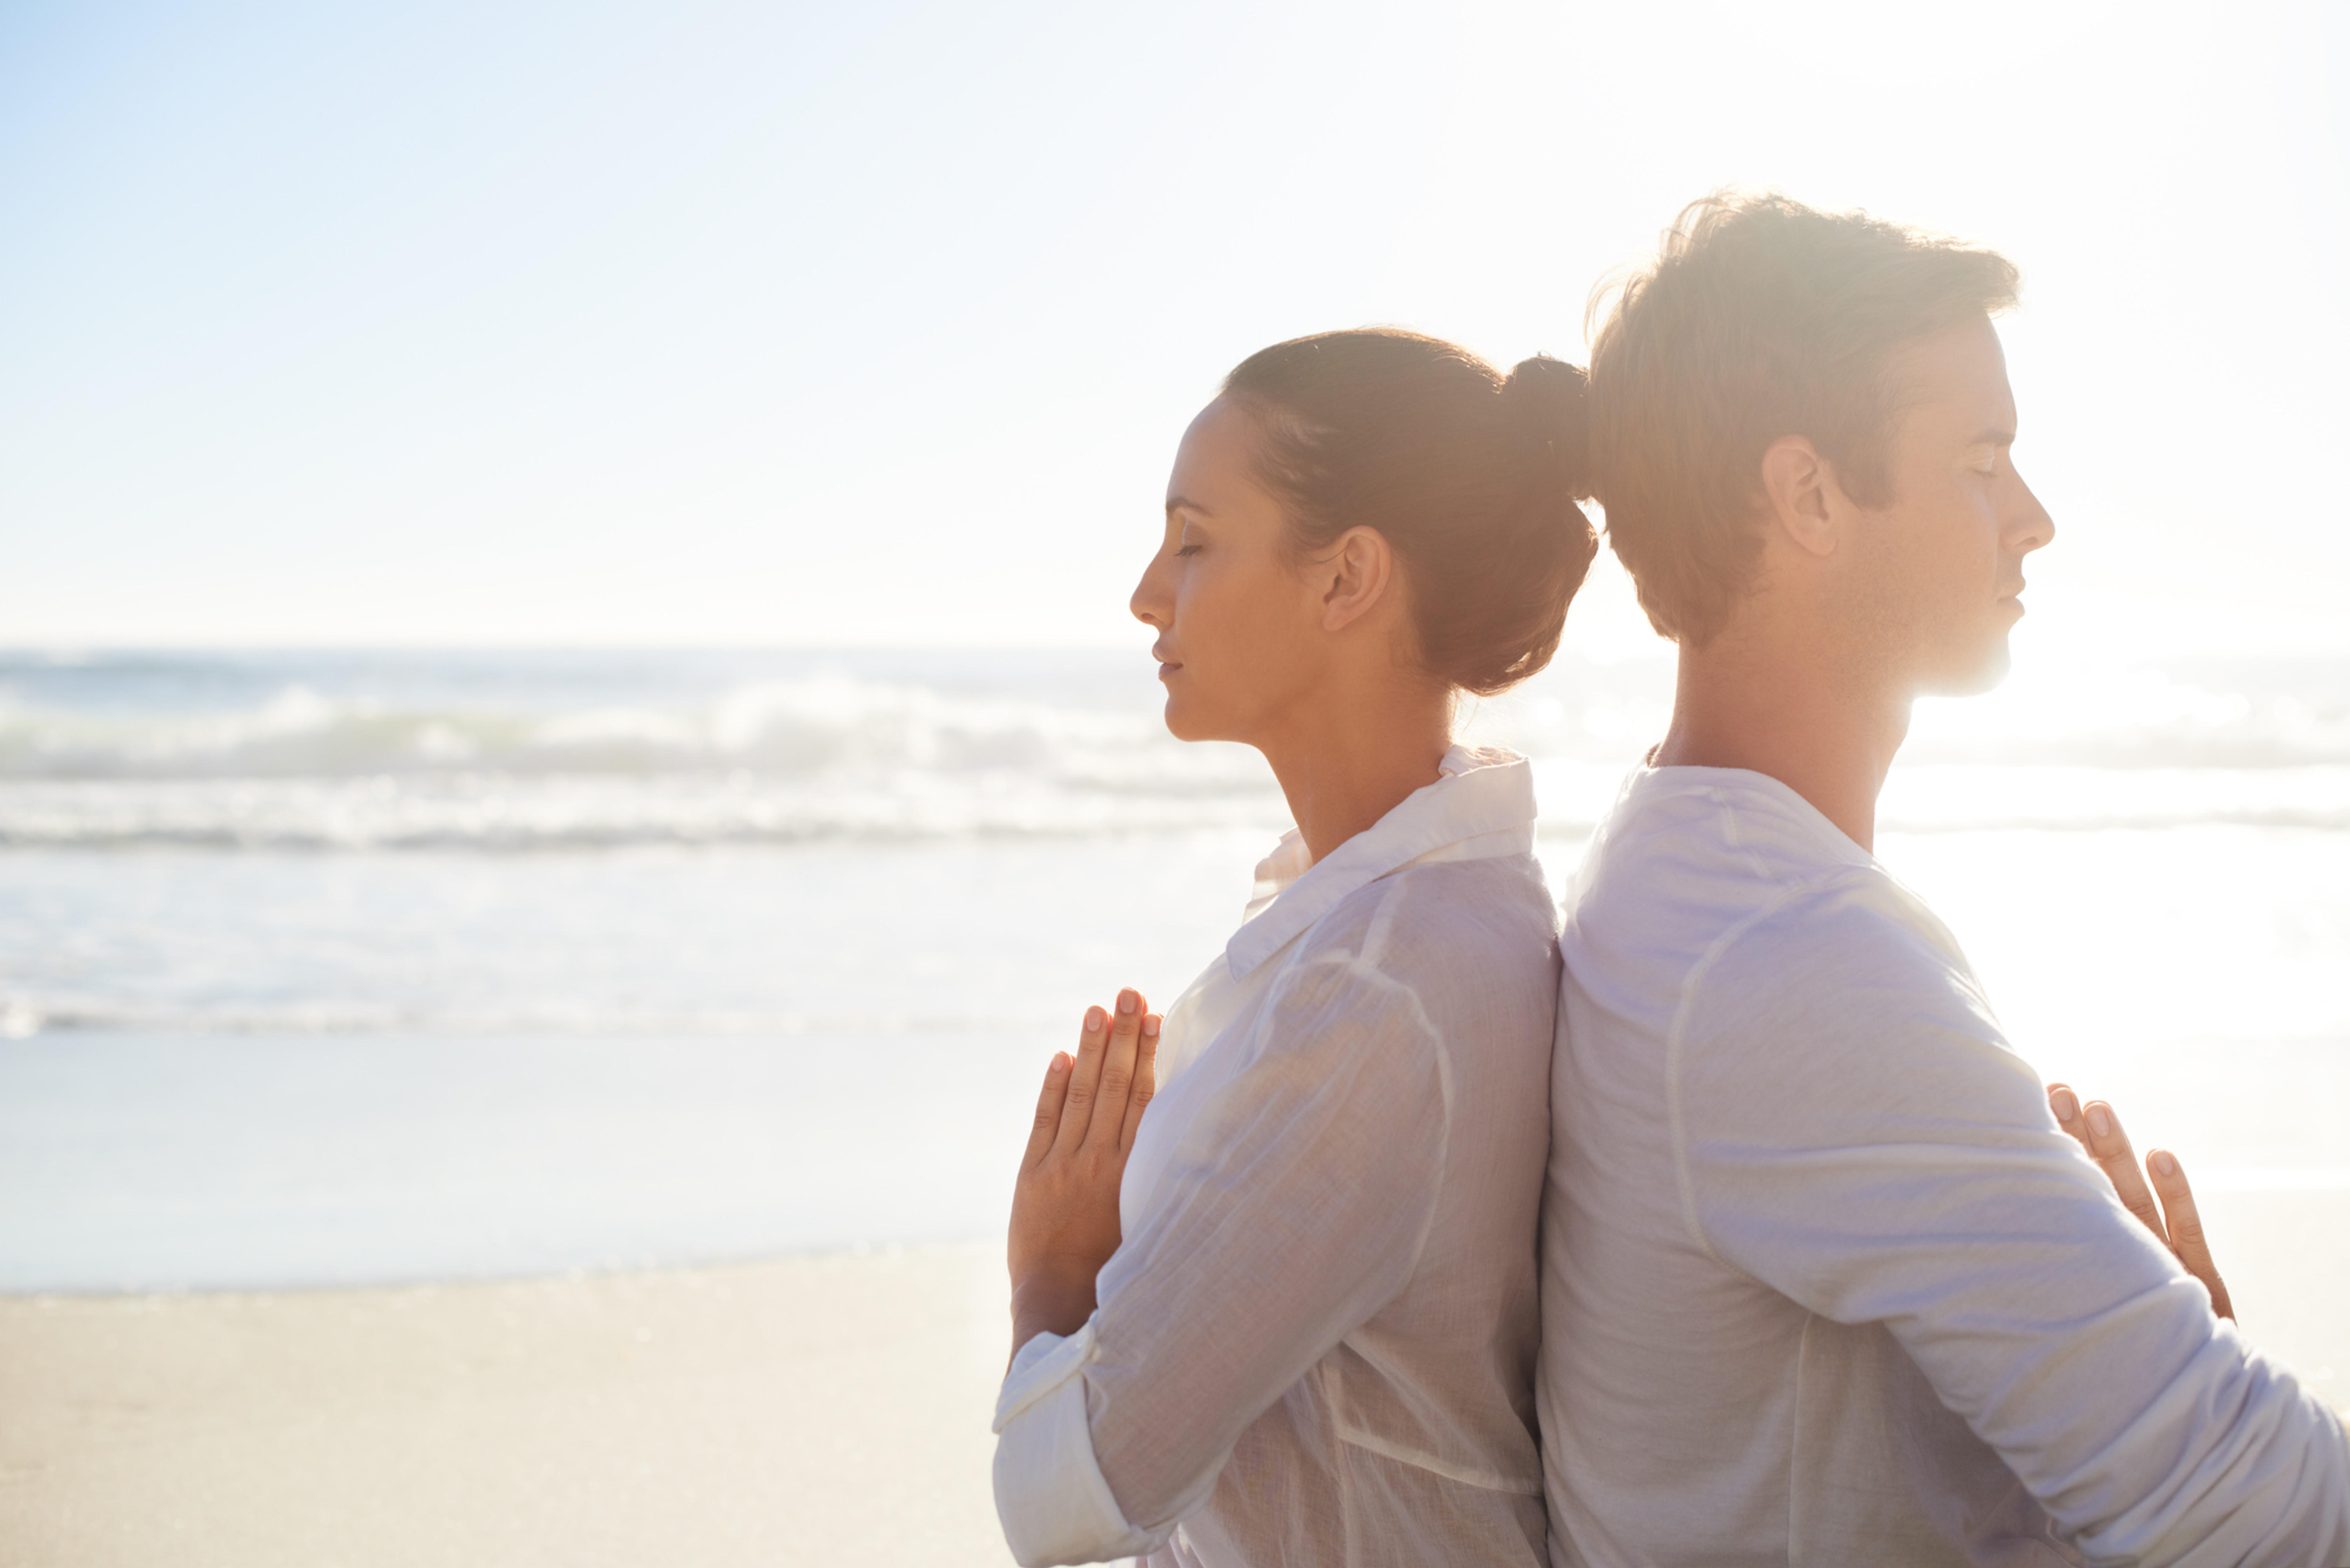 One-on-One Meditation Practice